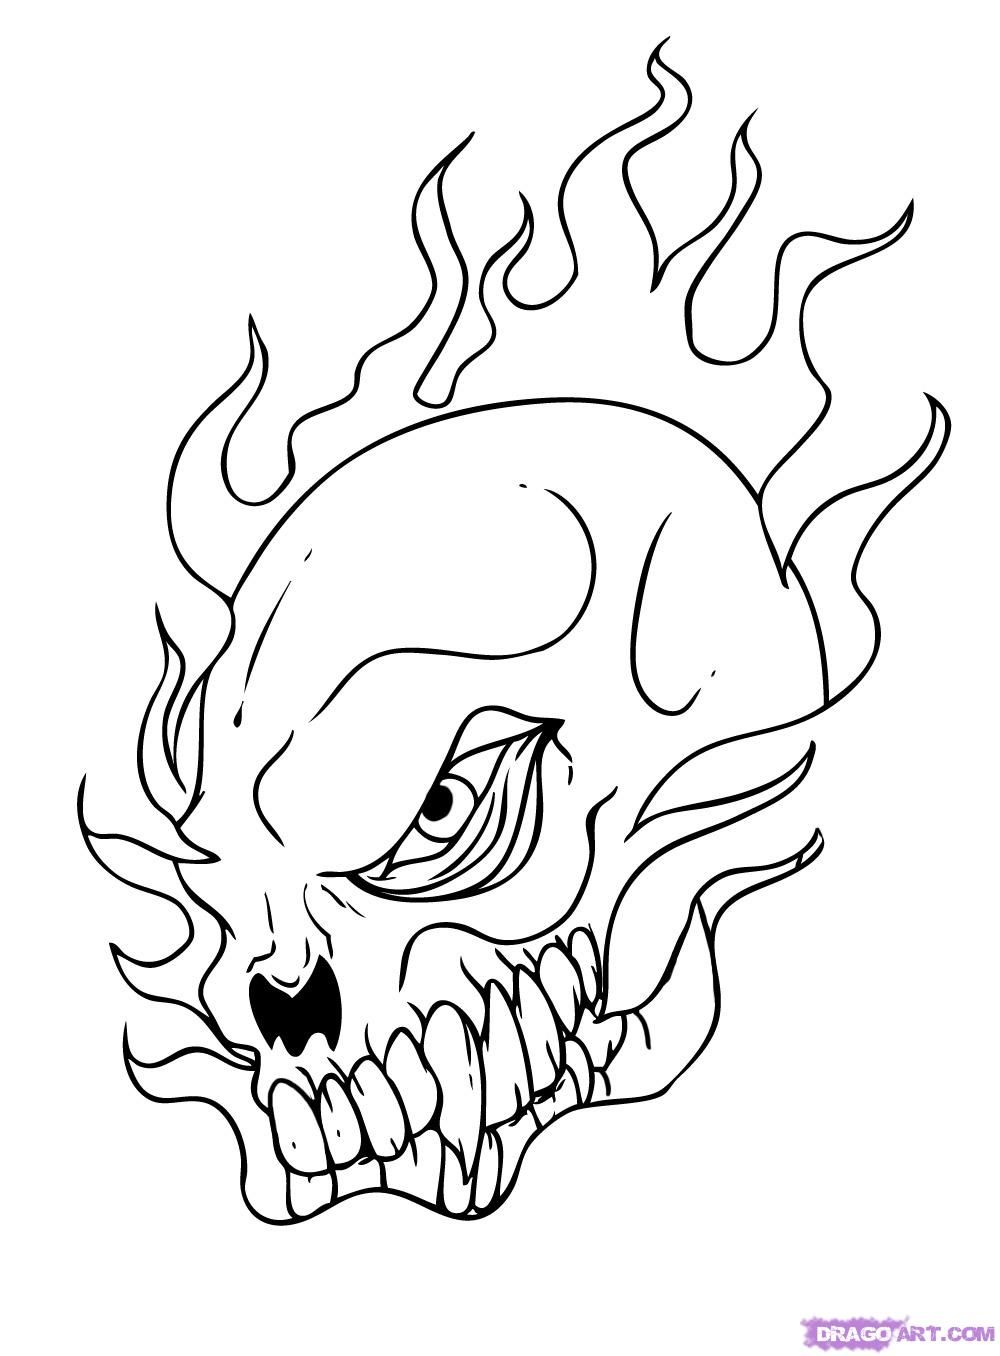 Cool Images 05 20 11 Skull Coloring Pages Cool Coloring Pages Coloring Pages